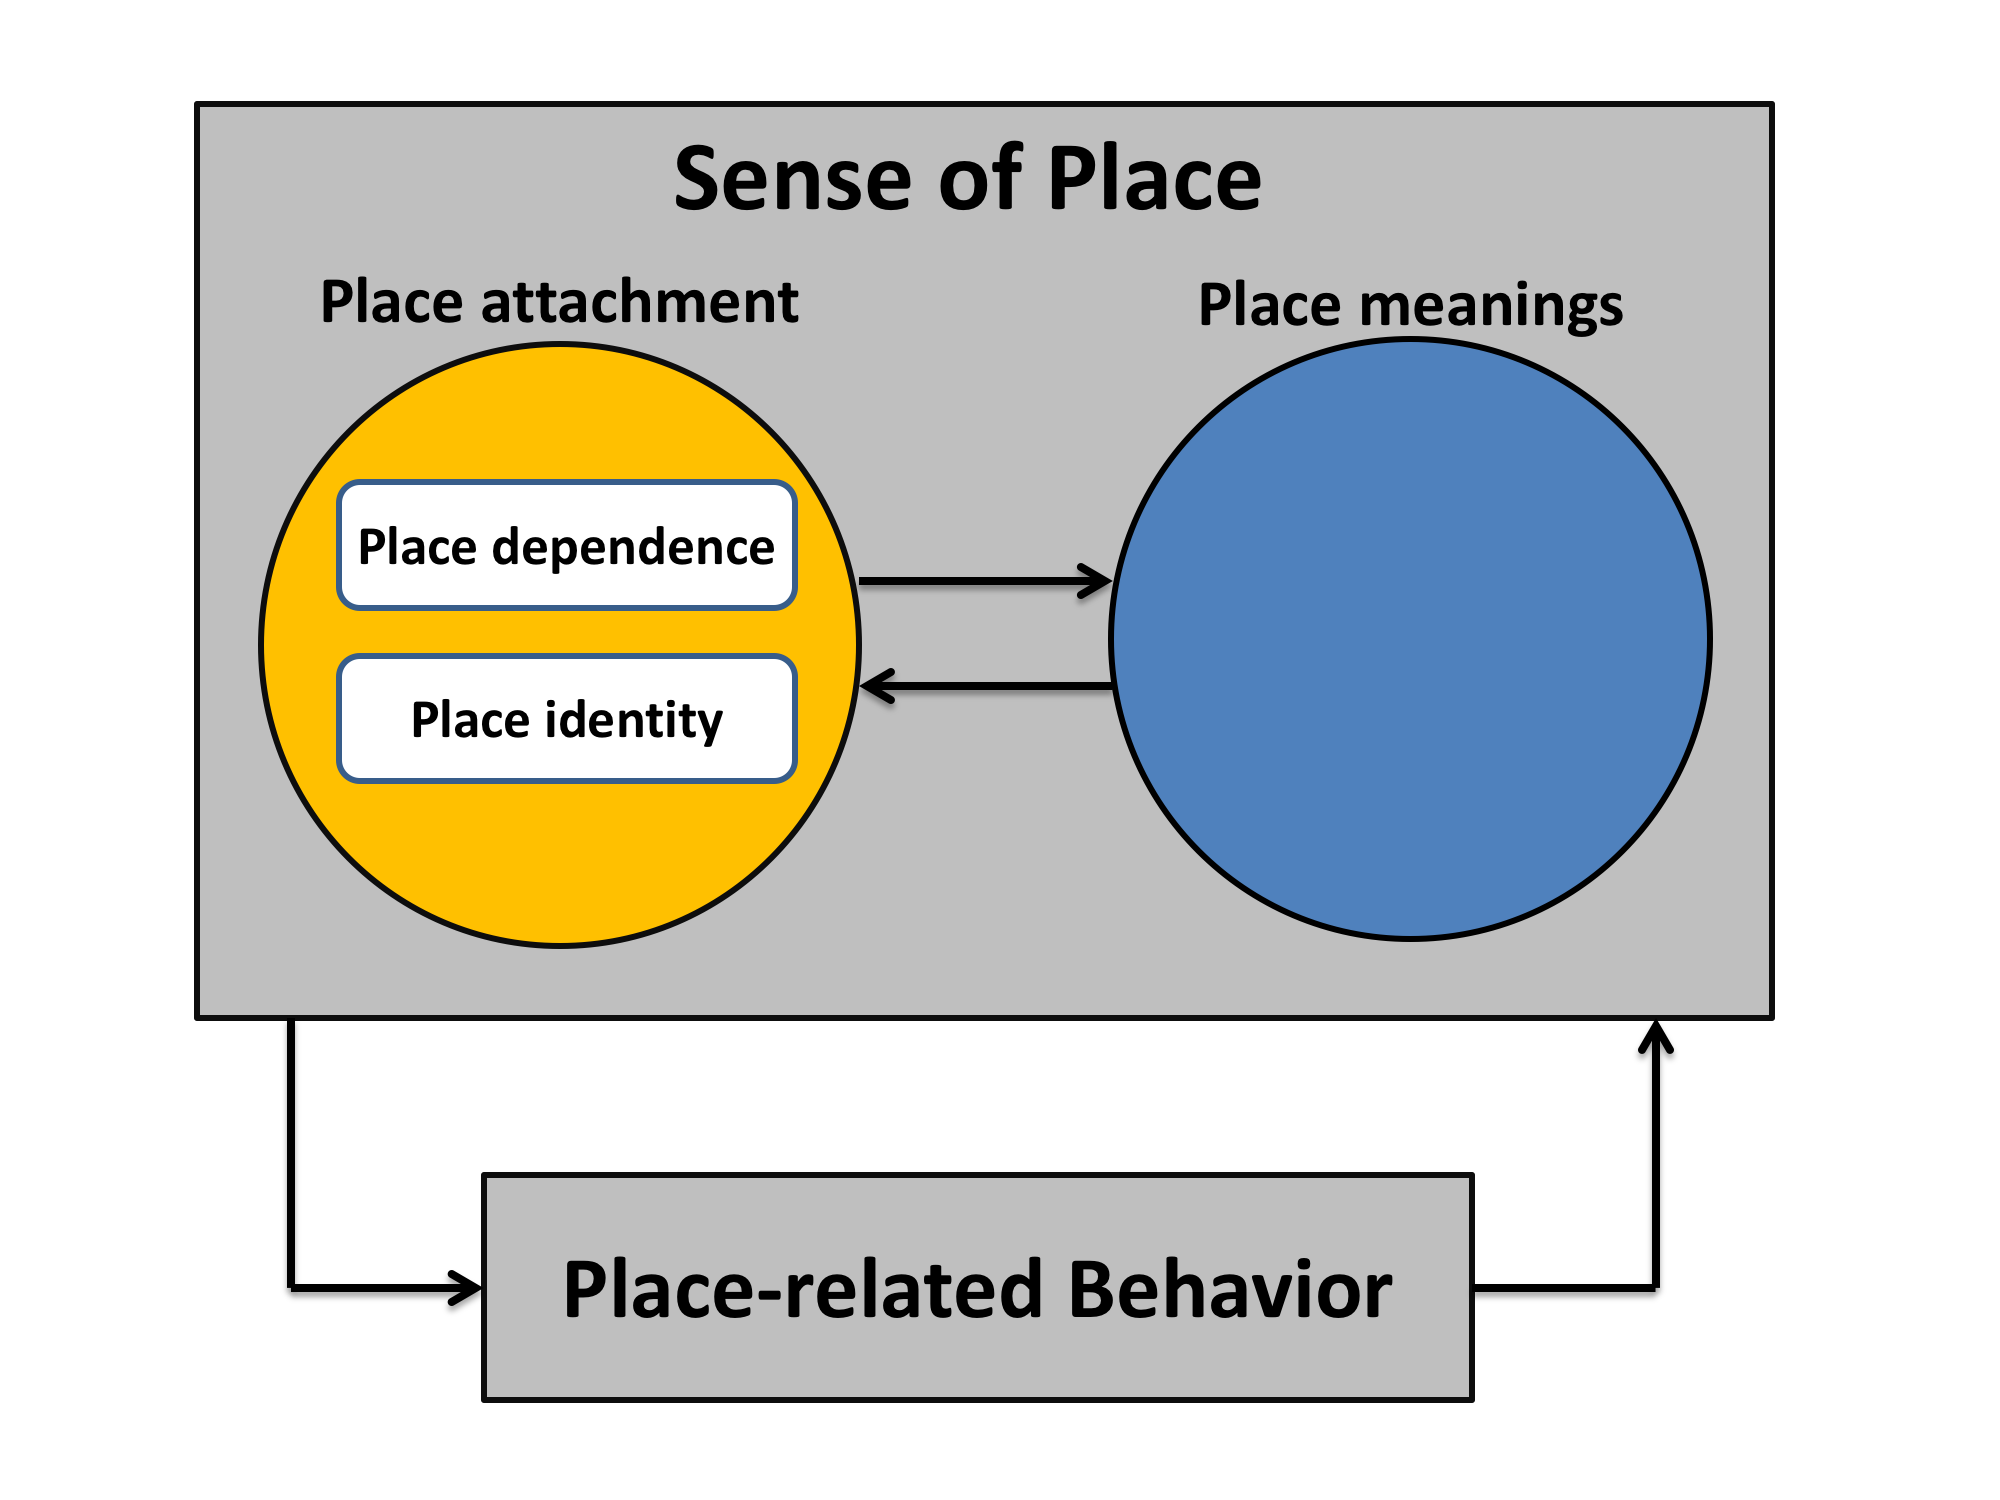 Fig. 1. The relationships among key sense of place concepts